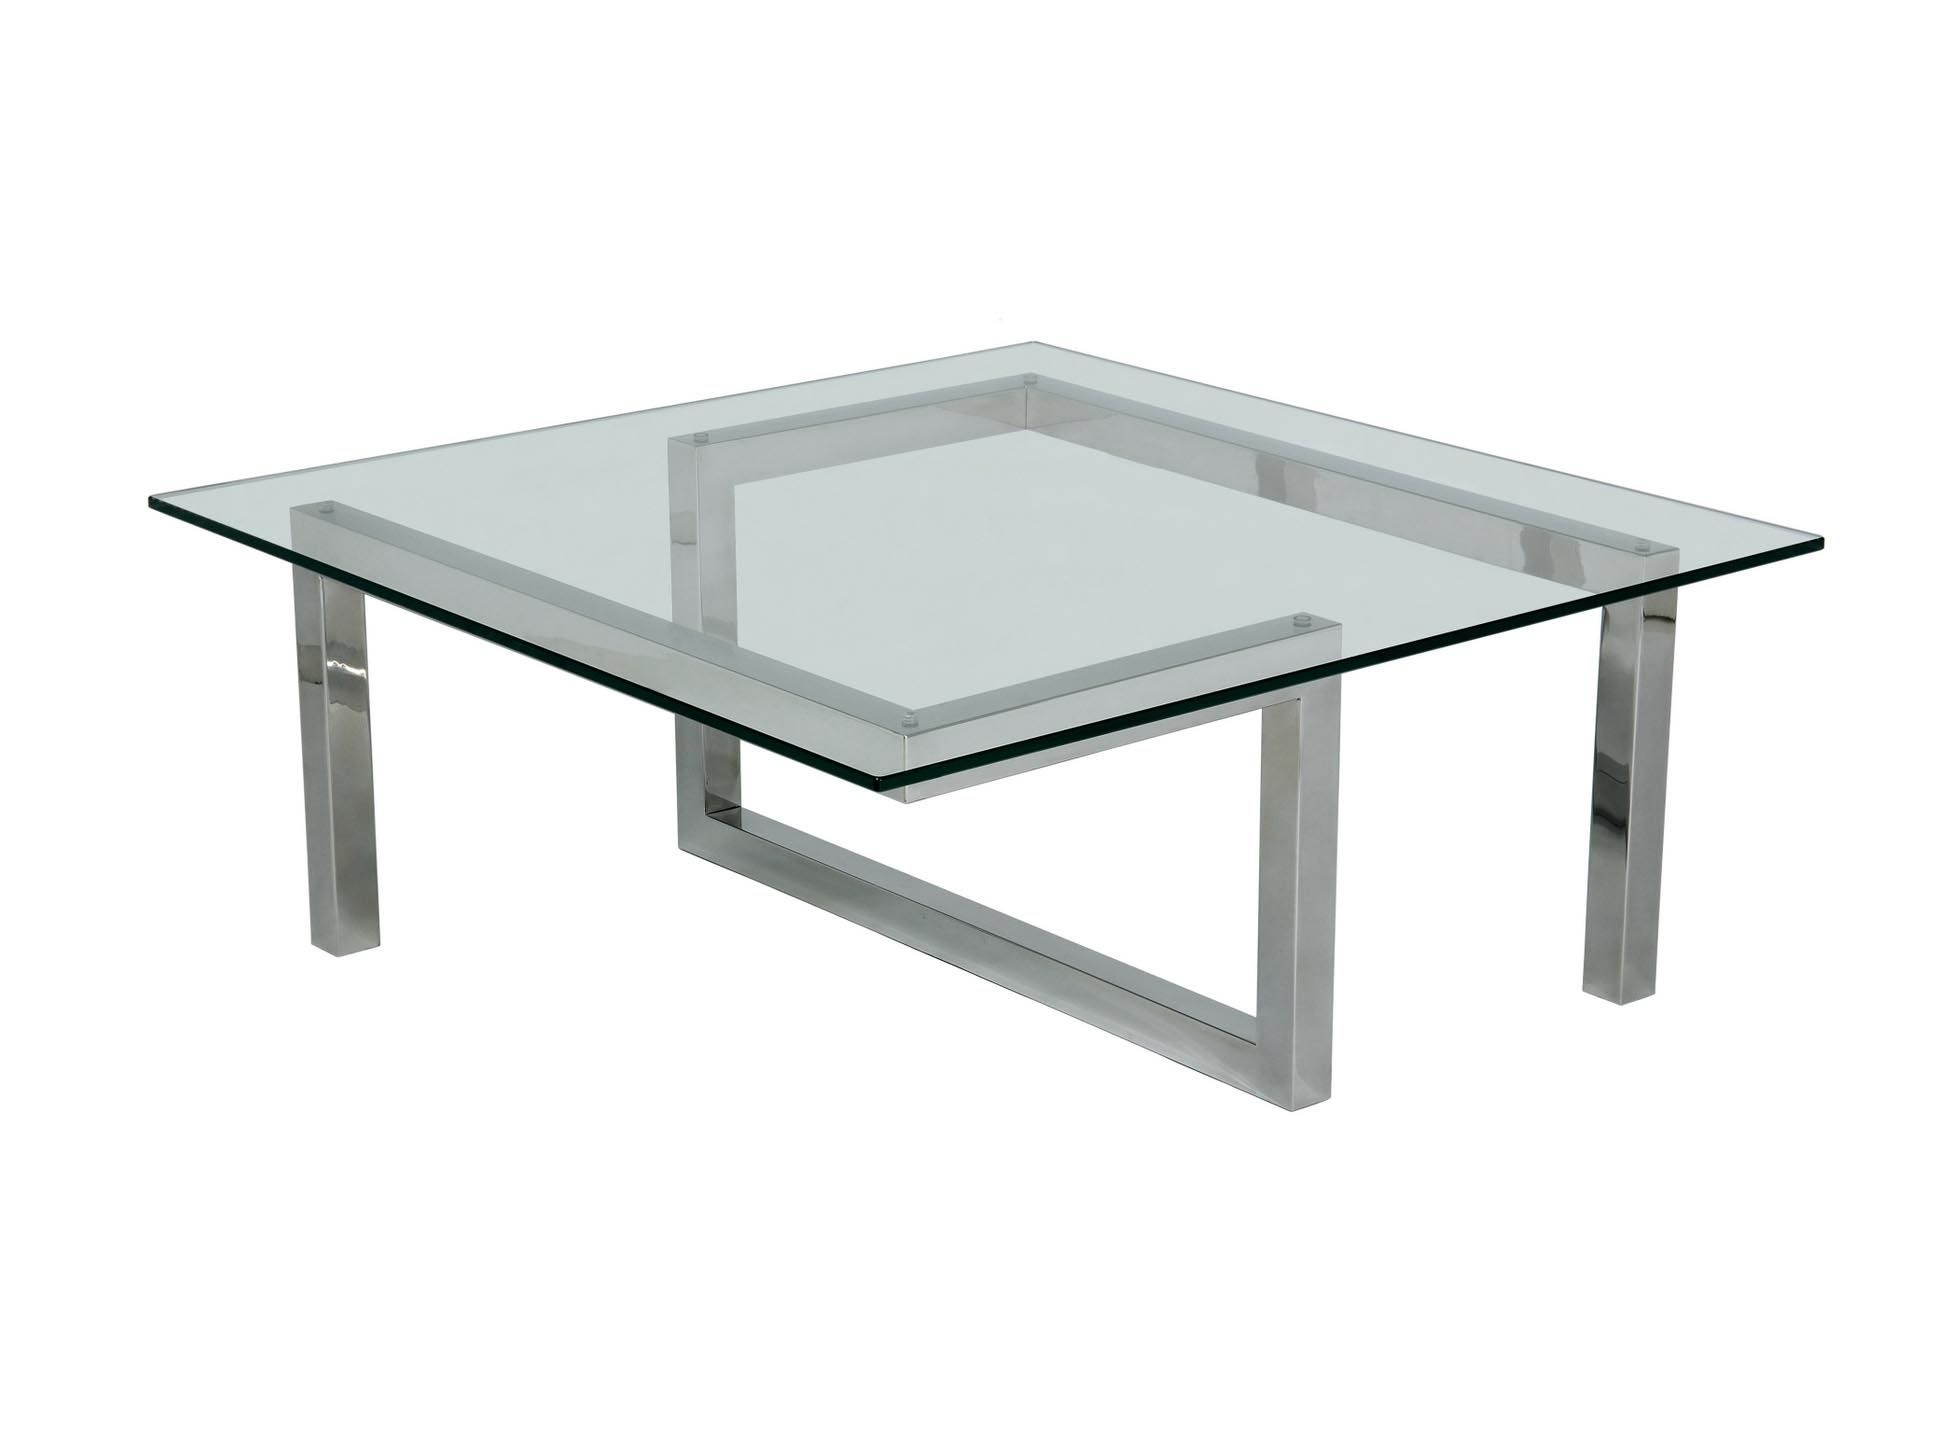 Captivating Stainless Steel And Glass Coffee Tables